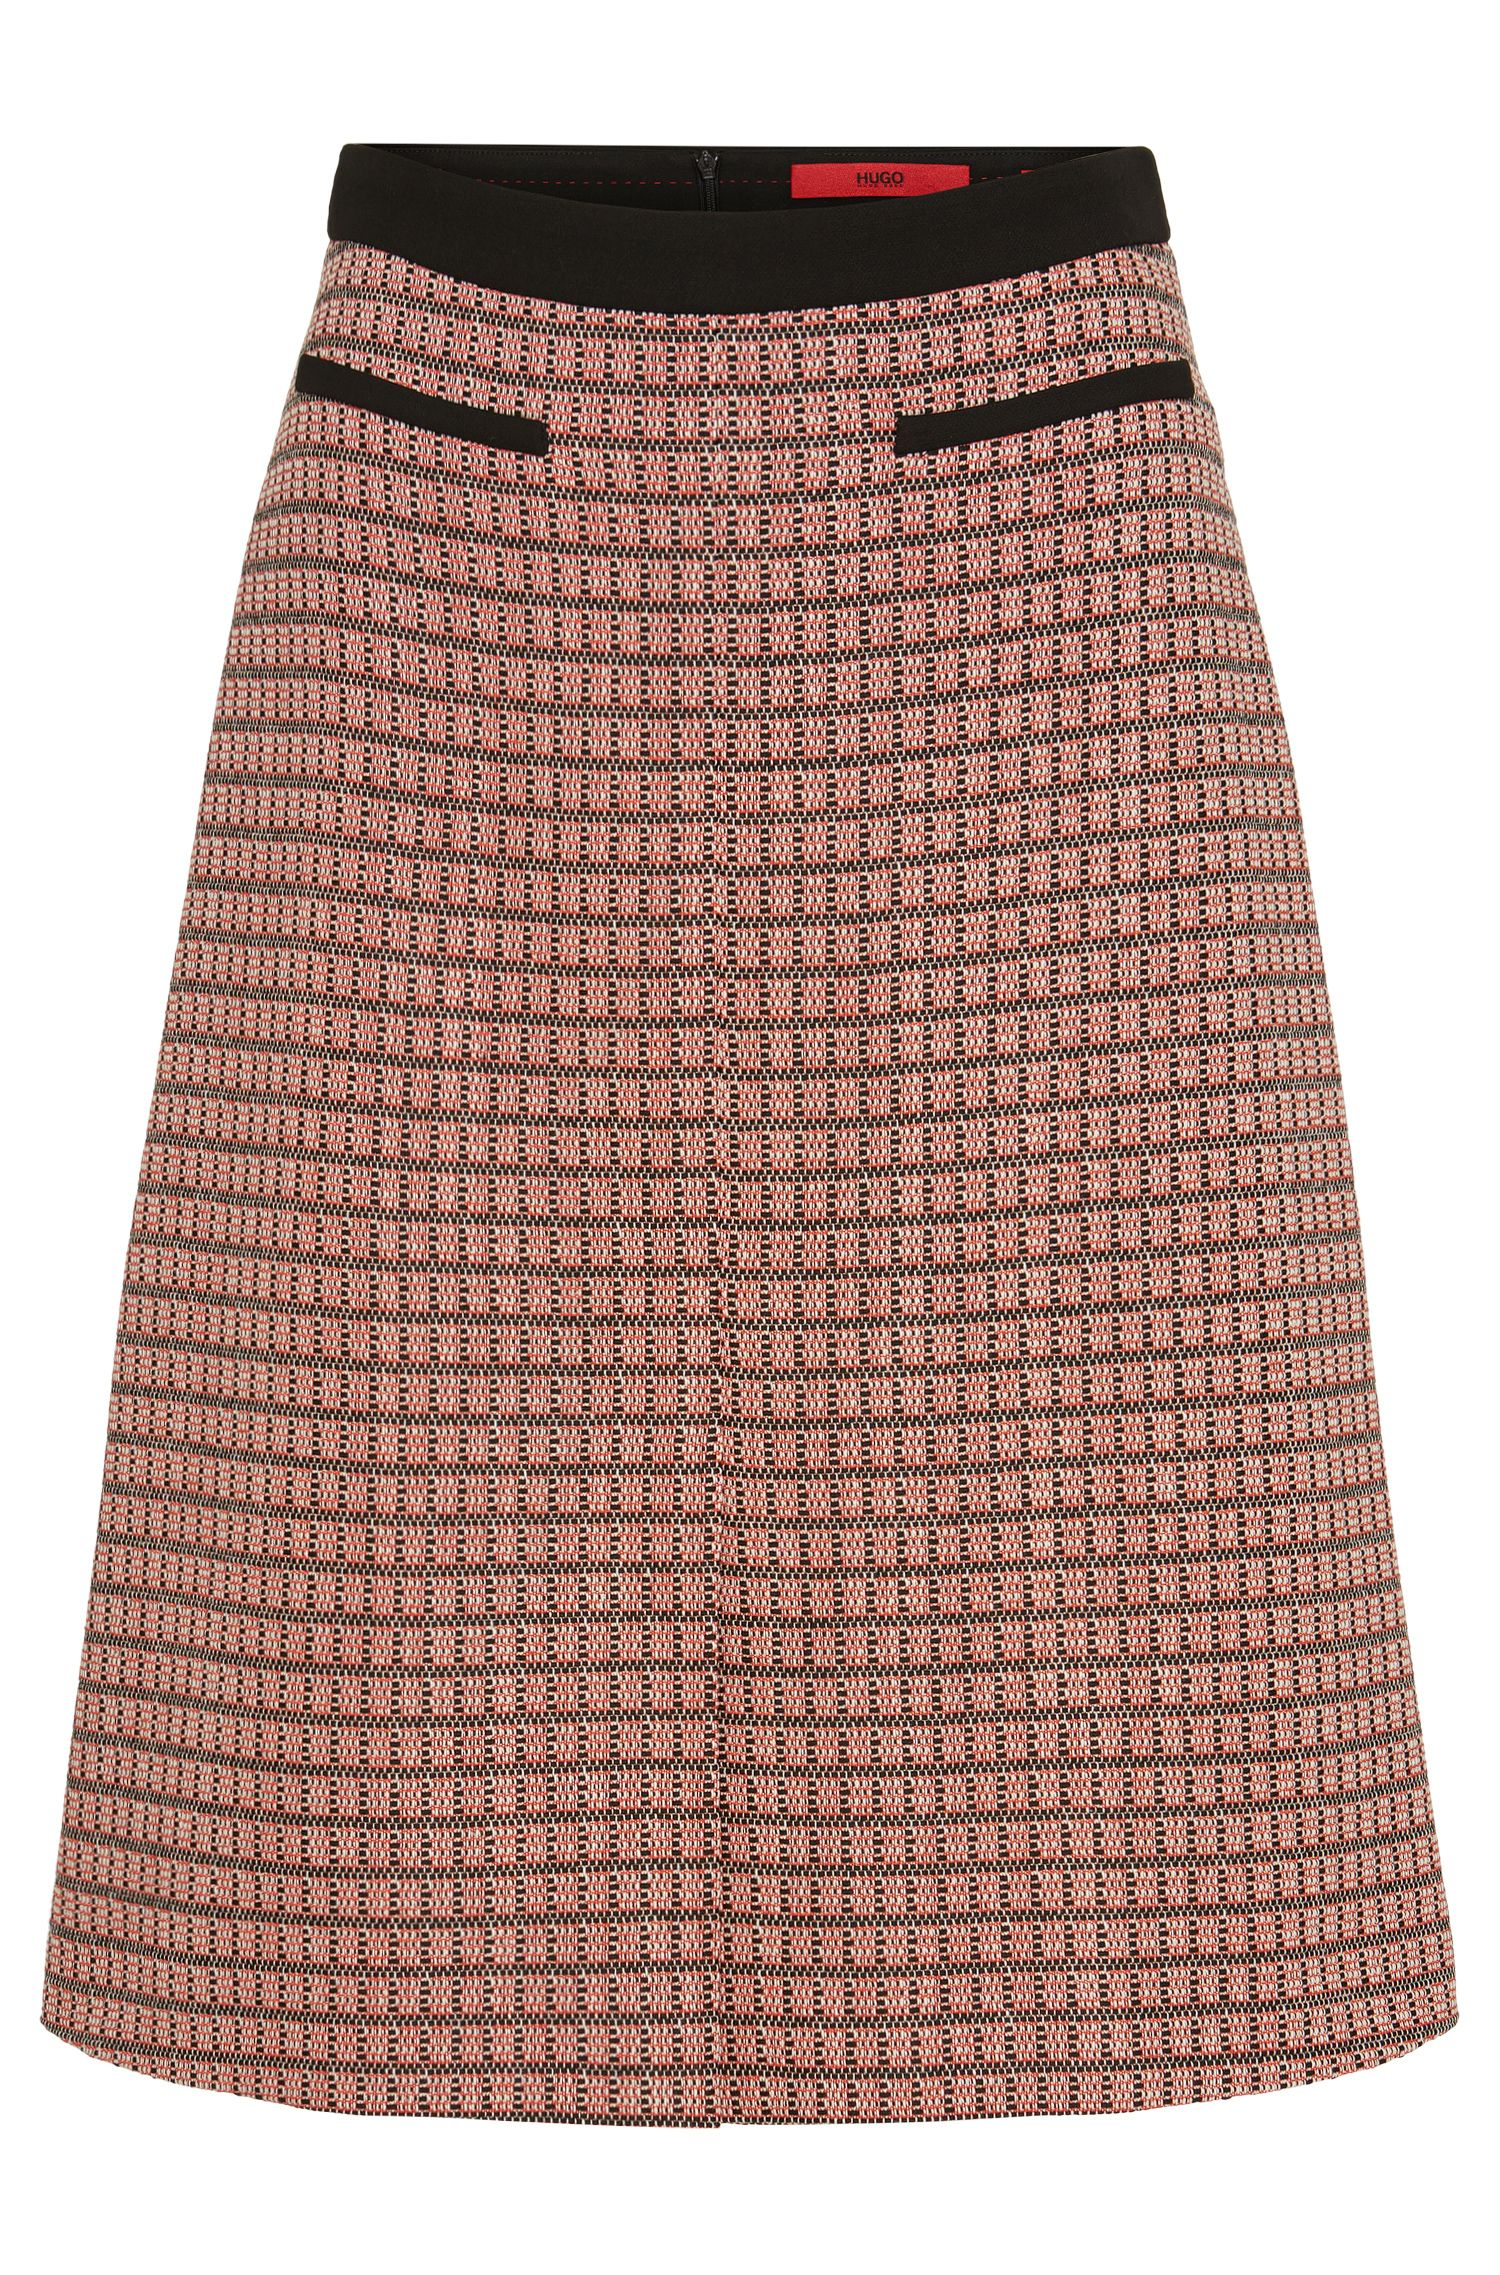 'Rinelle' | Cotton Blend A-Line Skirt